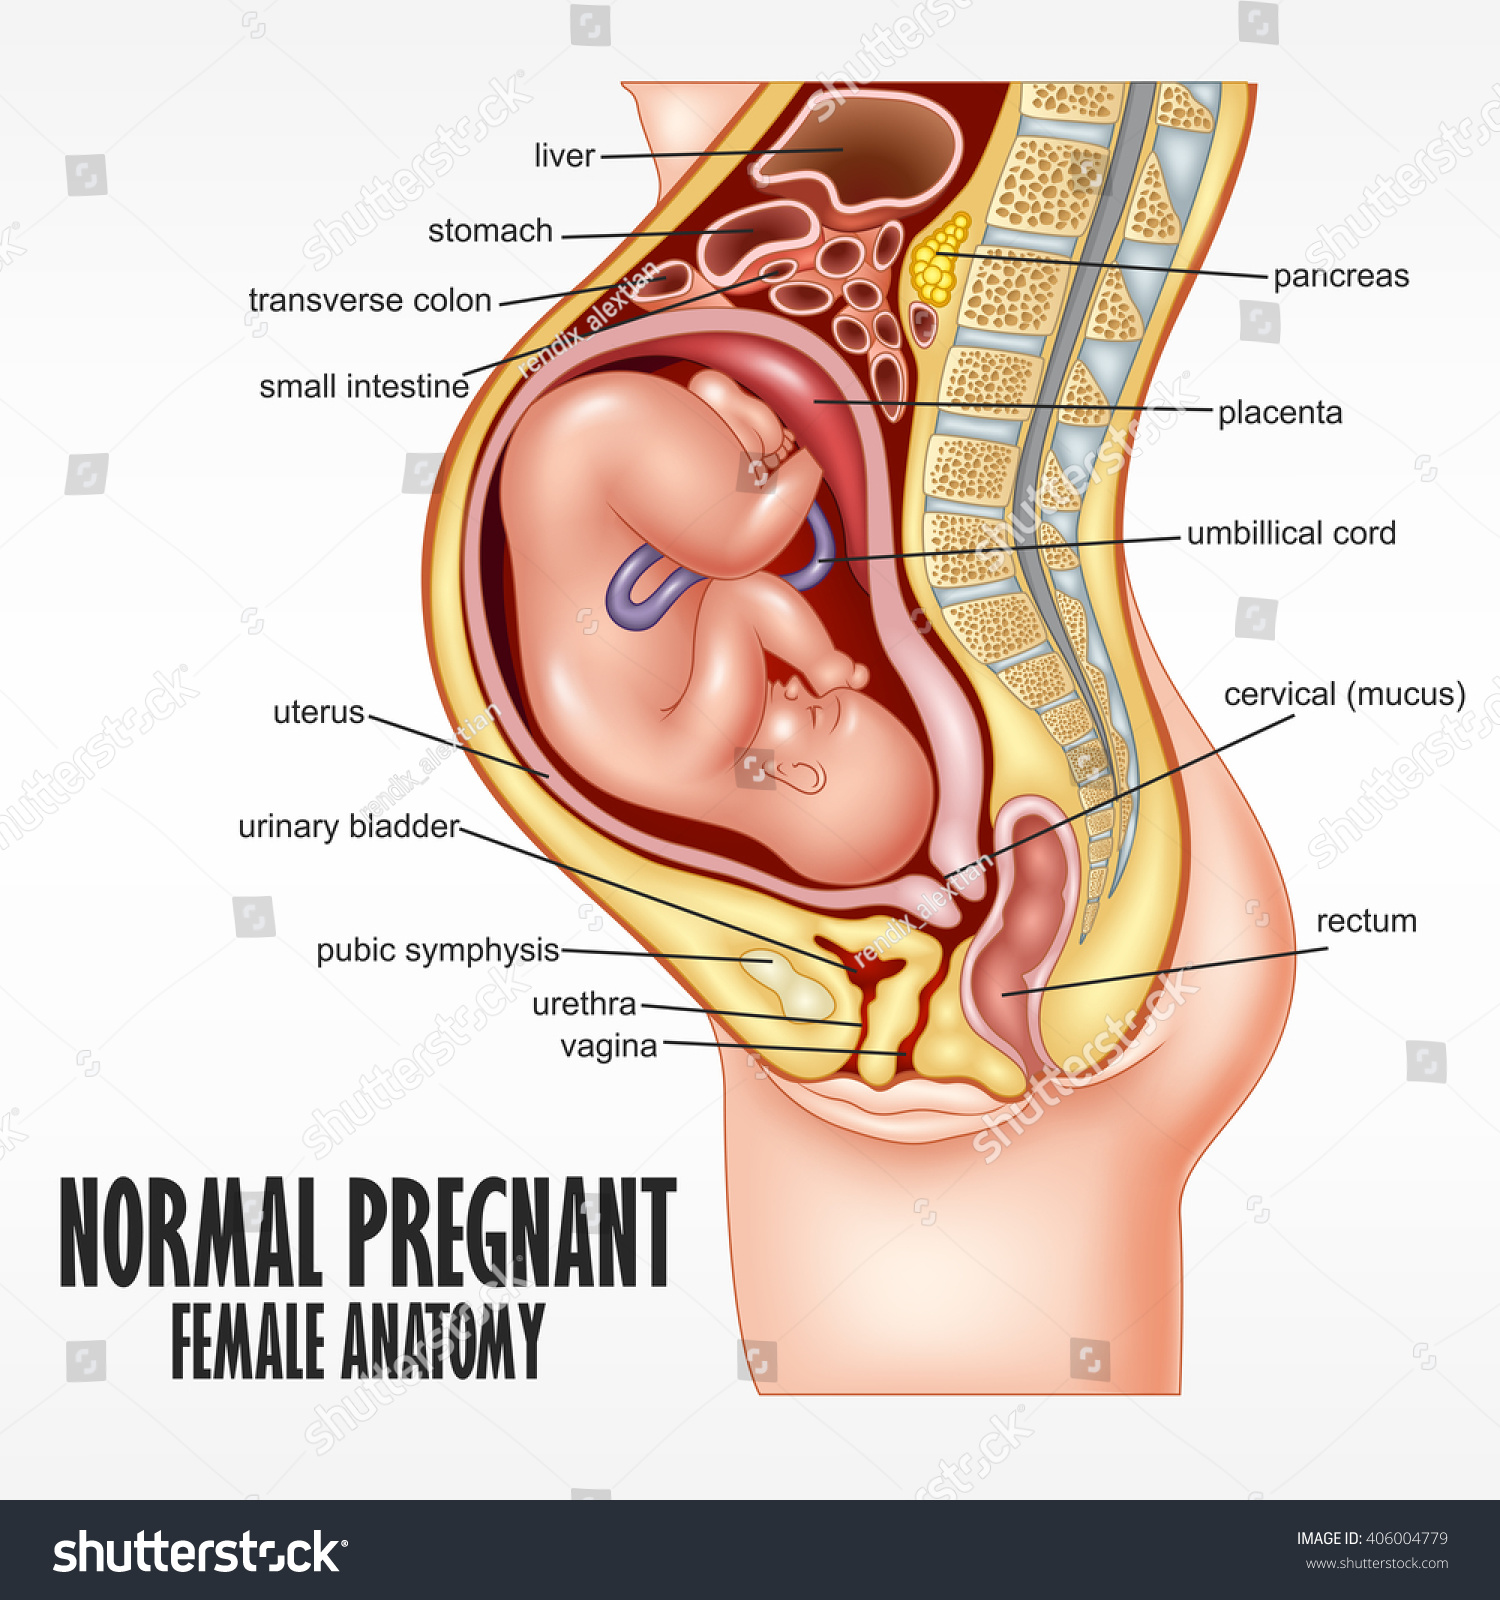 Normal Pregnant Female Anatomy Stock Vector (Royalty Free) 406004779 ...